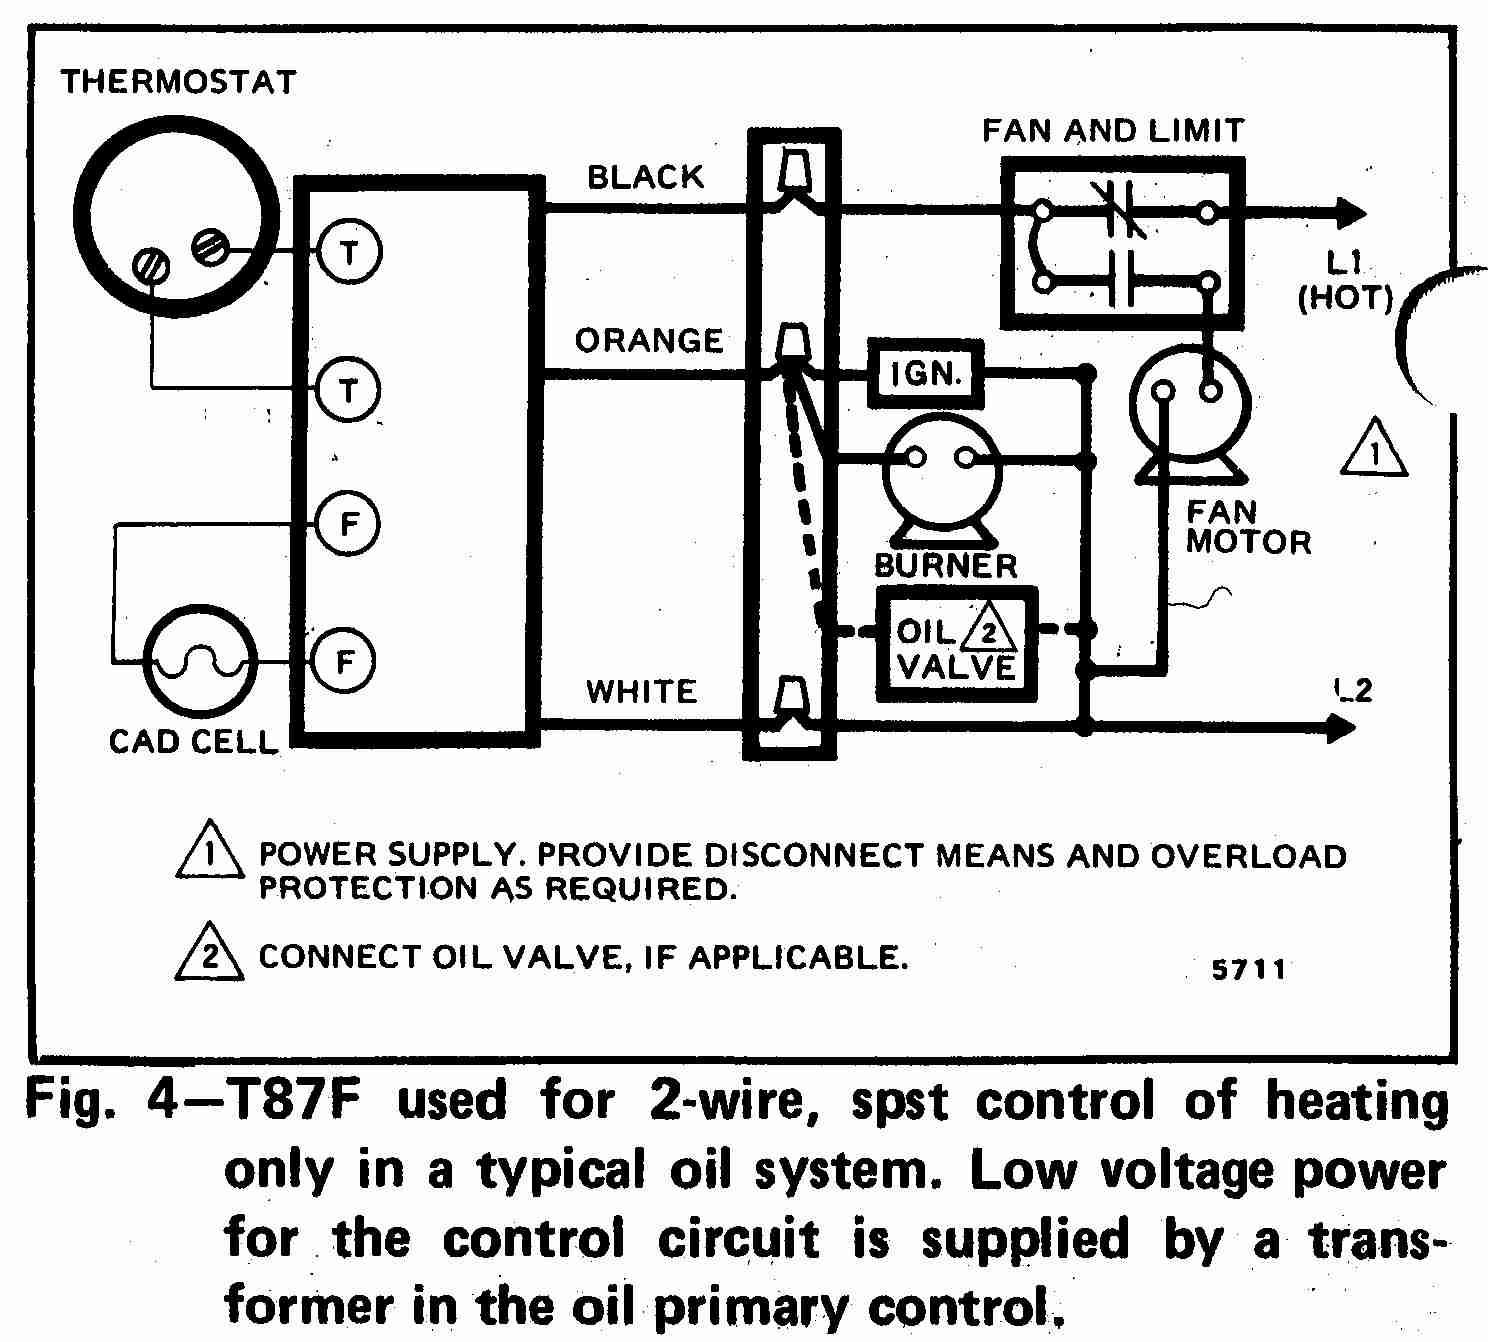 hight resolution of room thermostat wiring diagrams for hvac systems honeywell rth2410 wiring diagram honeywell t87f thermostat wiring